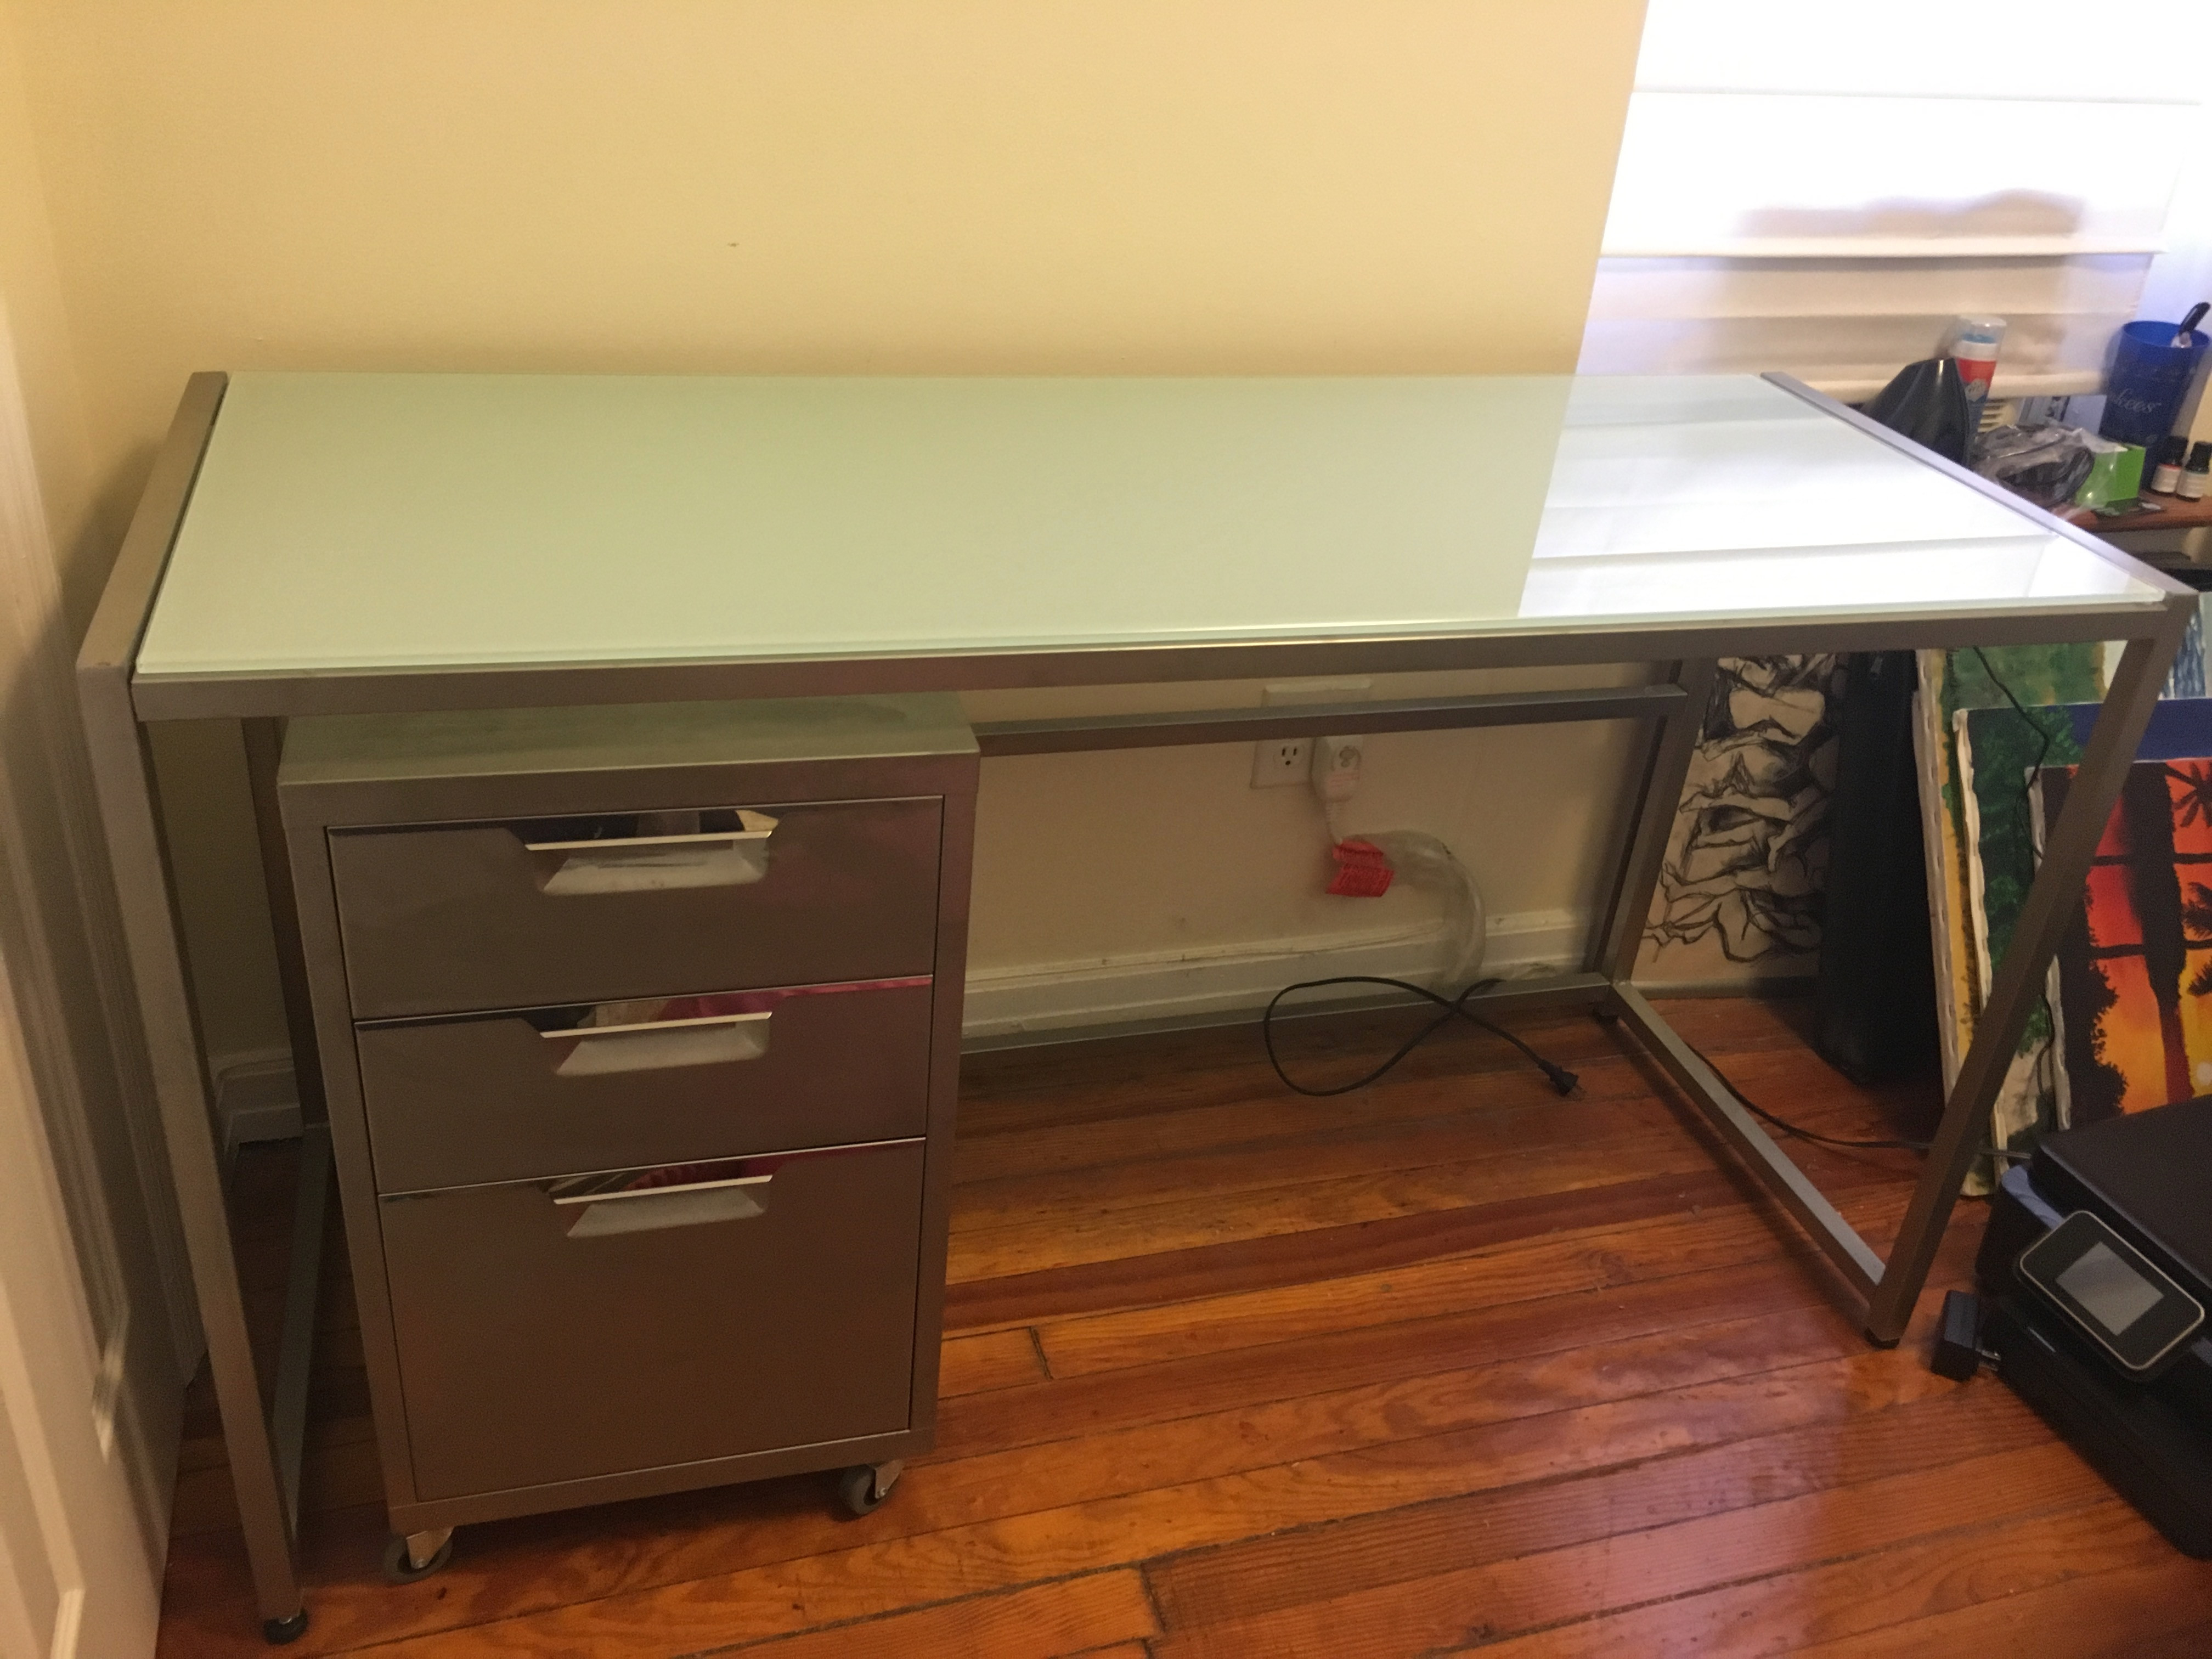 CB2 Trig Frosted Glass Desk with Meta Filing Cabinet